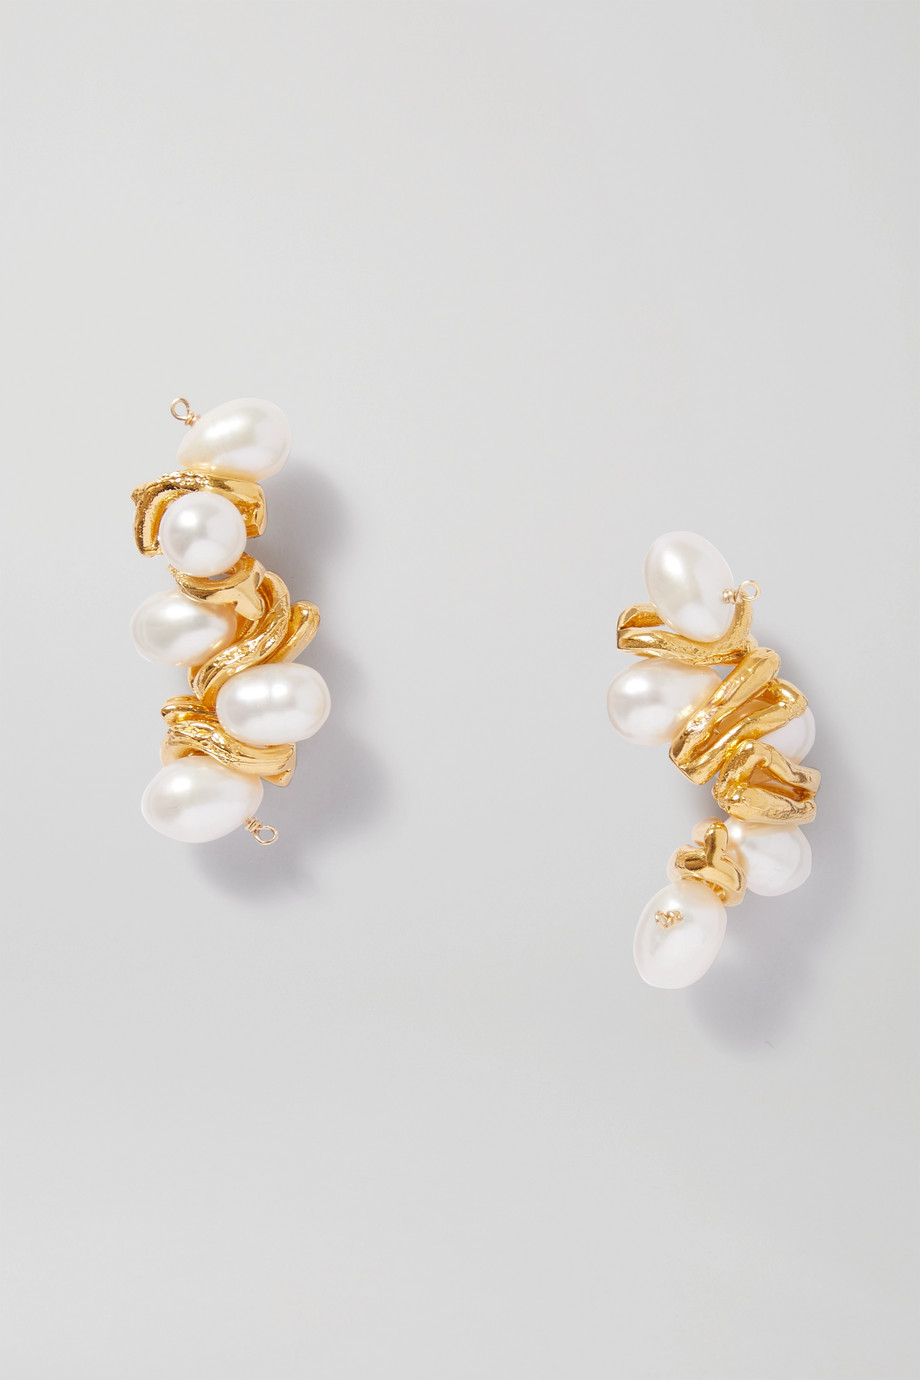 Alighieri The Calliope gold-plated pearl earrings